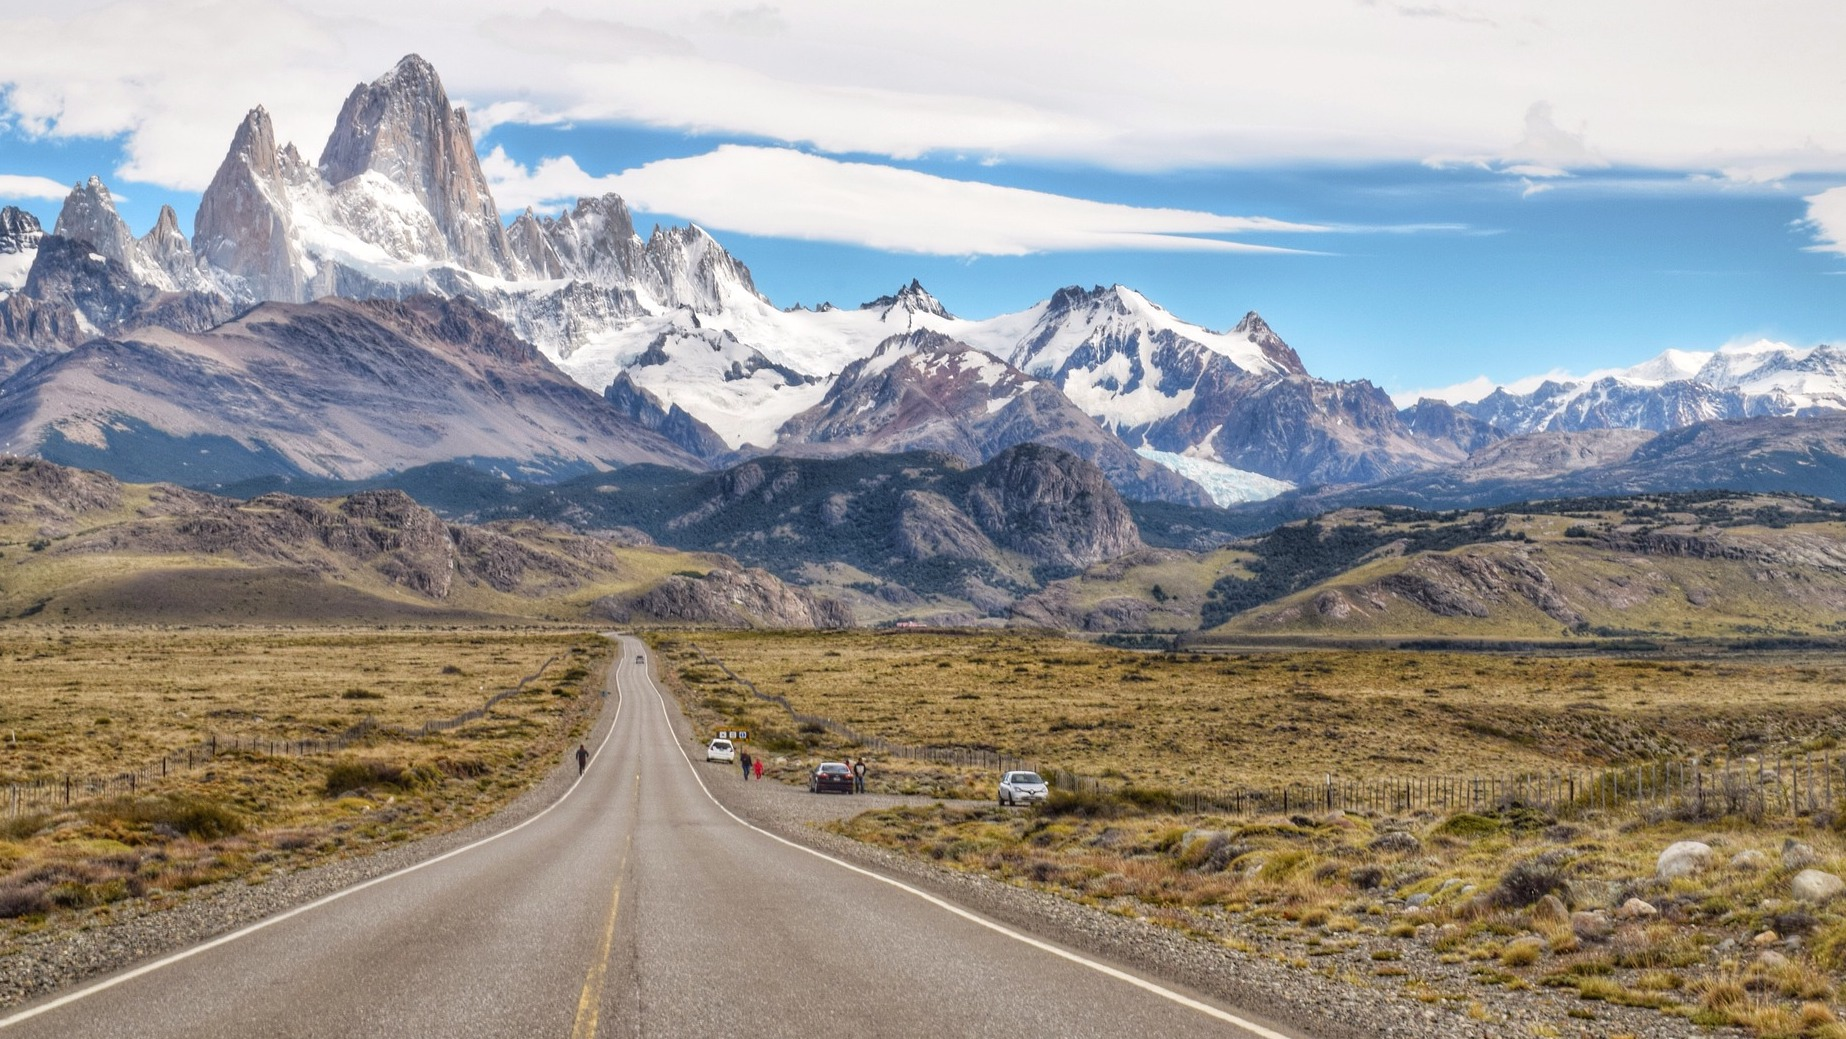 Facts About Patagonia in Argentina